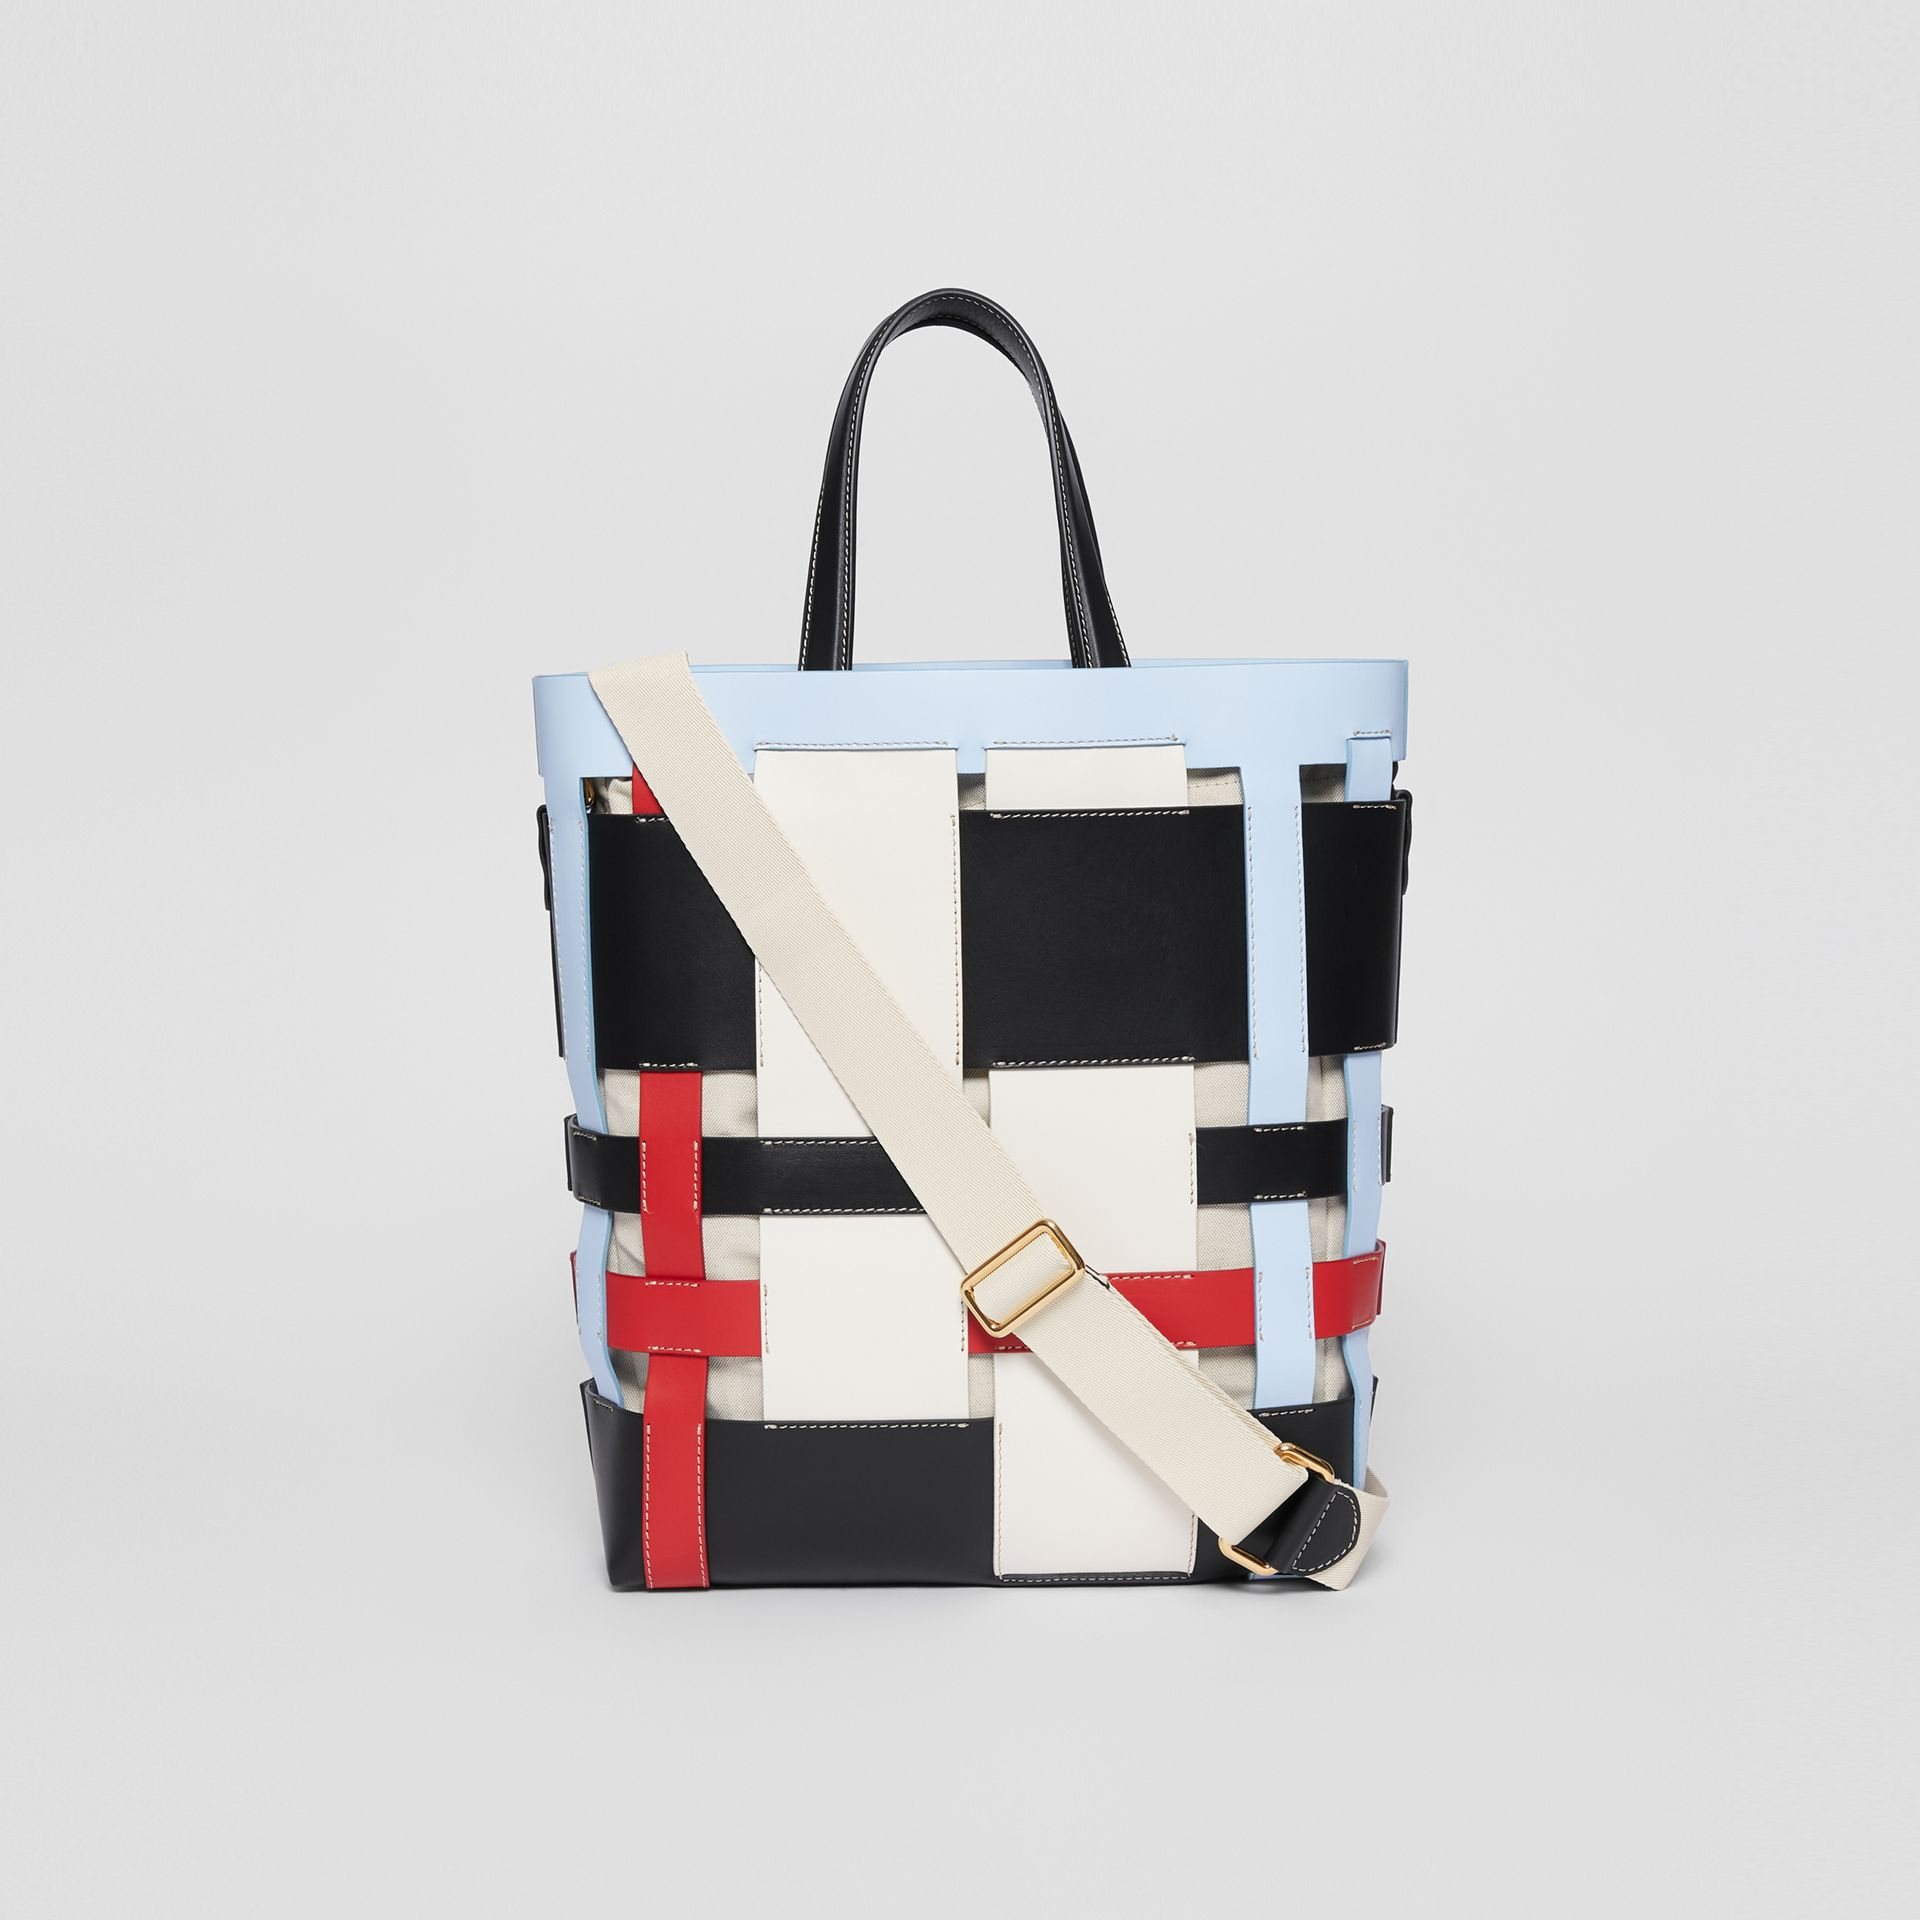 Medium Colour Block Leather Foster Tote in Blue - Women | Burberry - gallery image 5